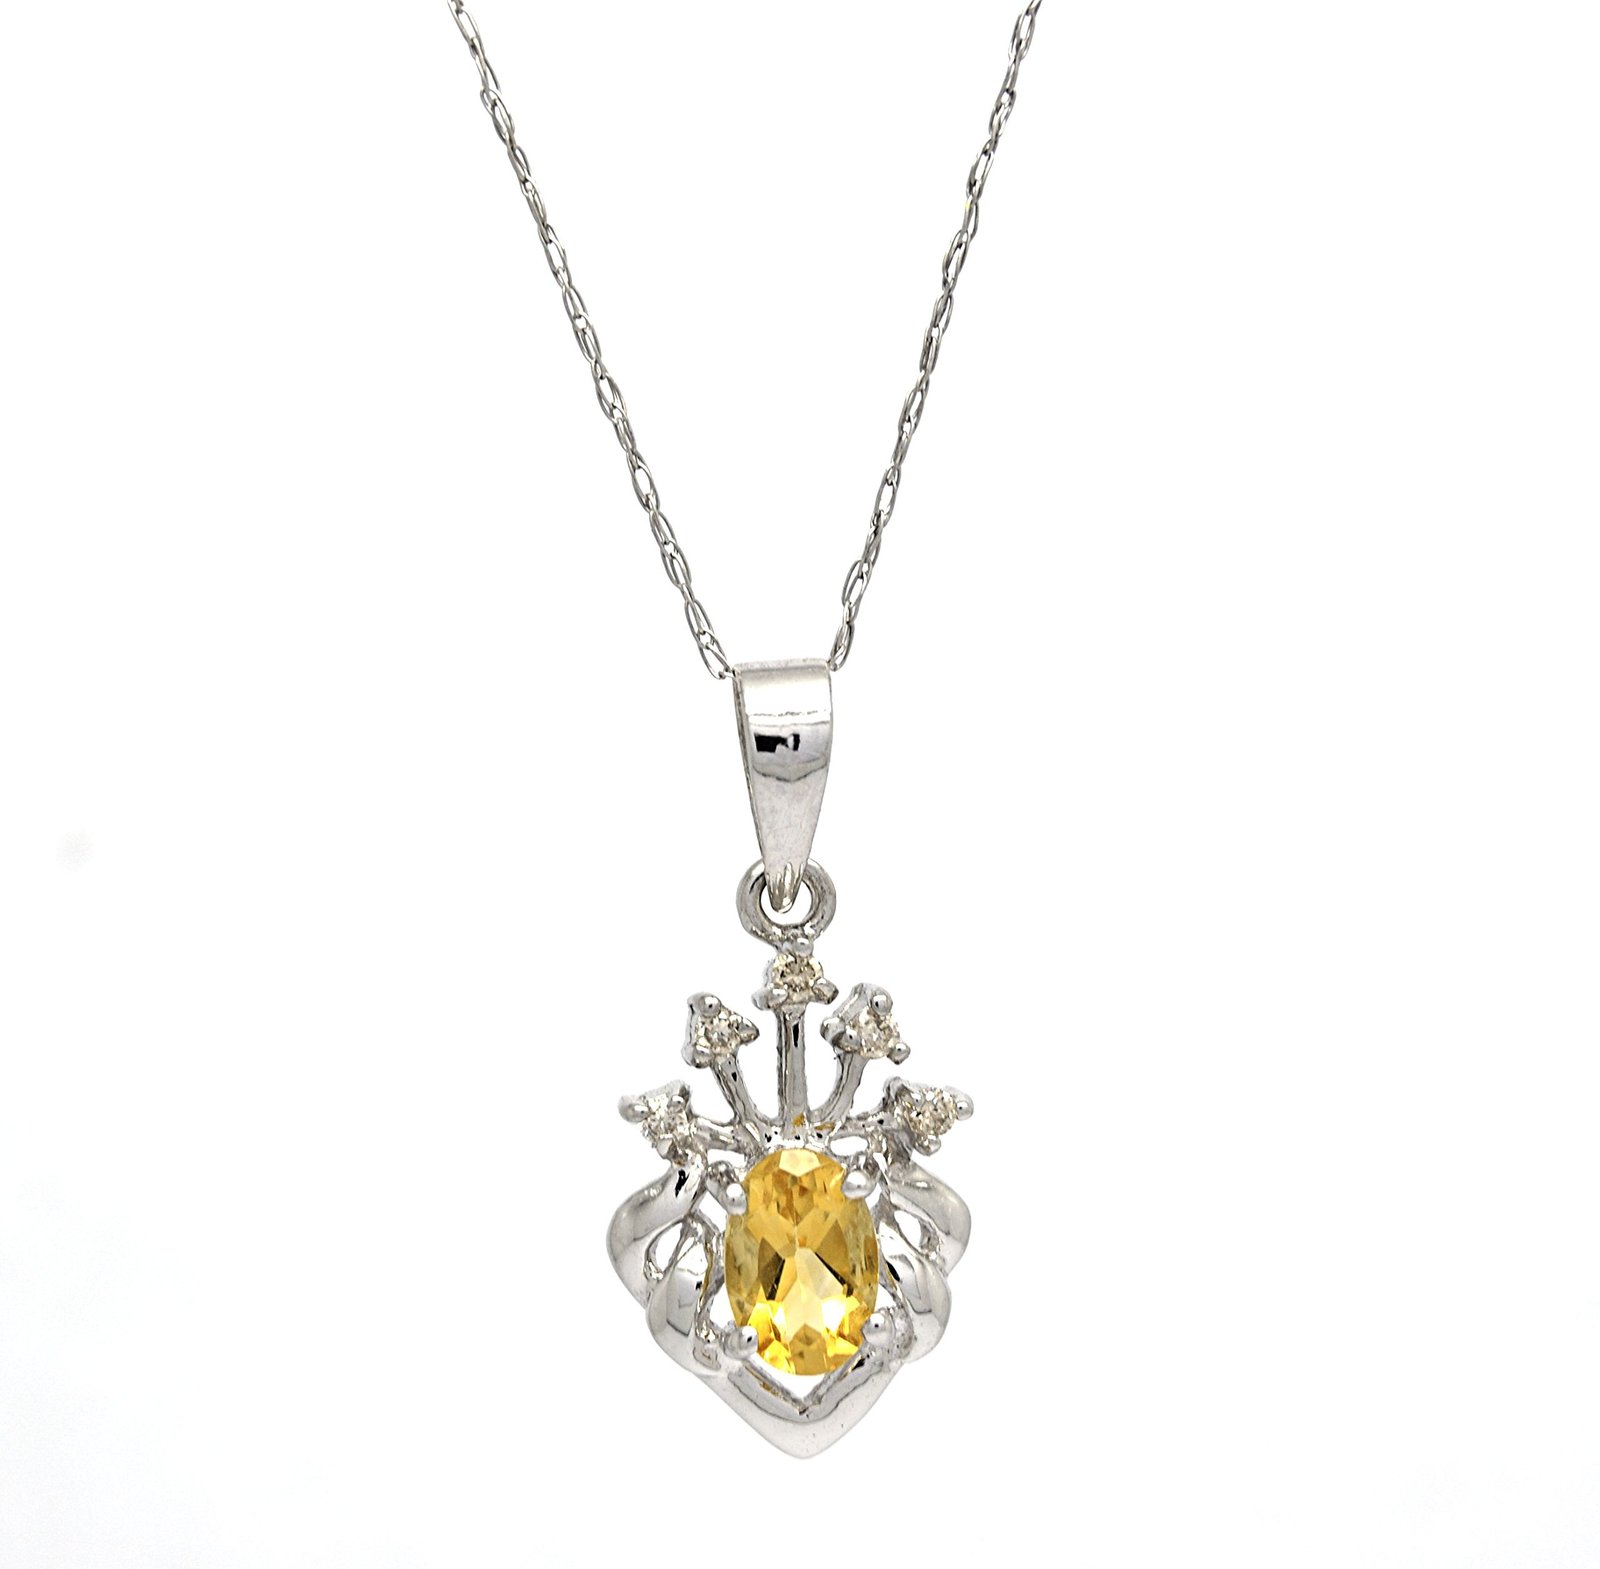 14K White Gold Genuine Yellow Citrine Heart Tiara Pendant with 10 K Cable Chain